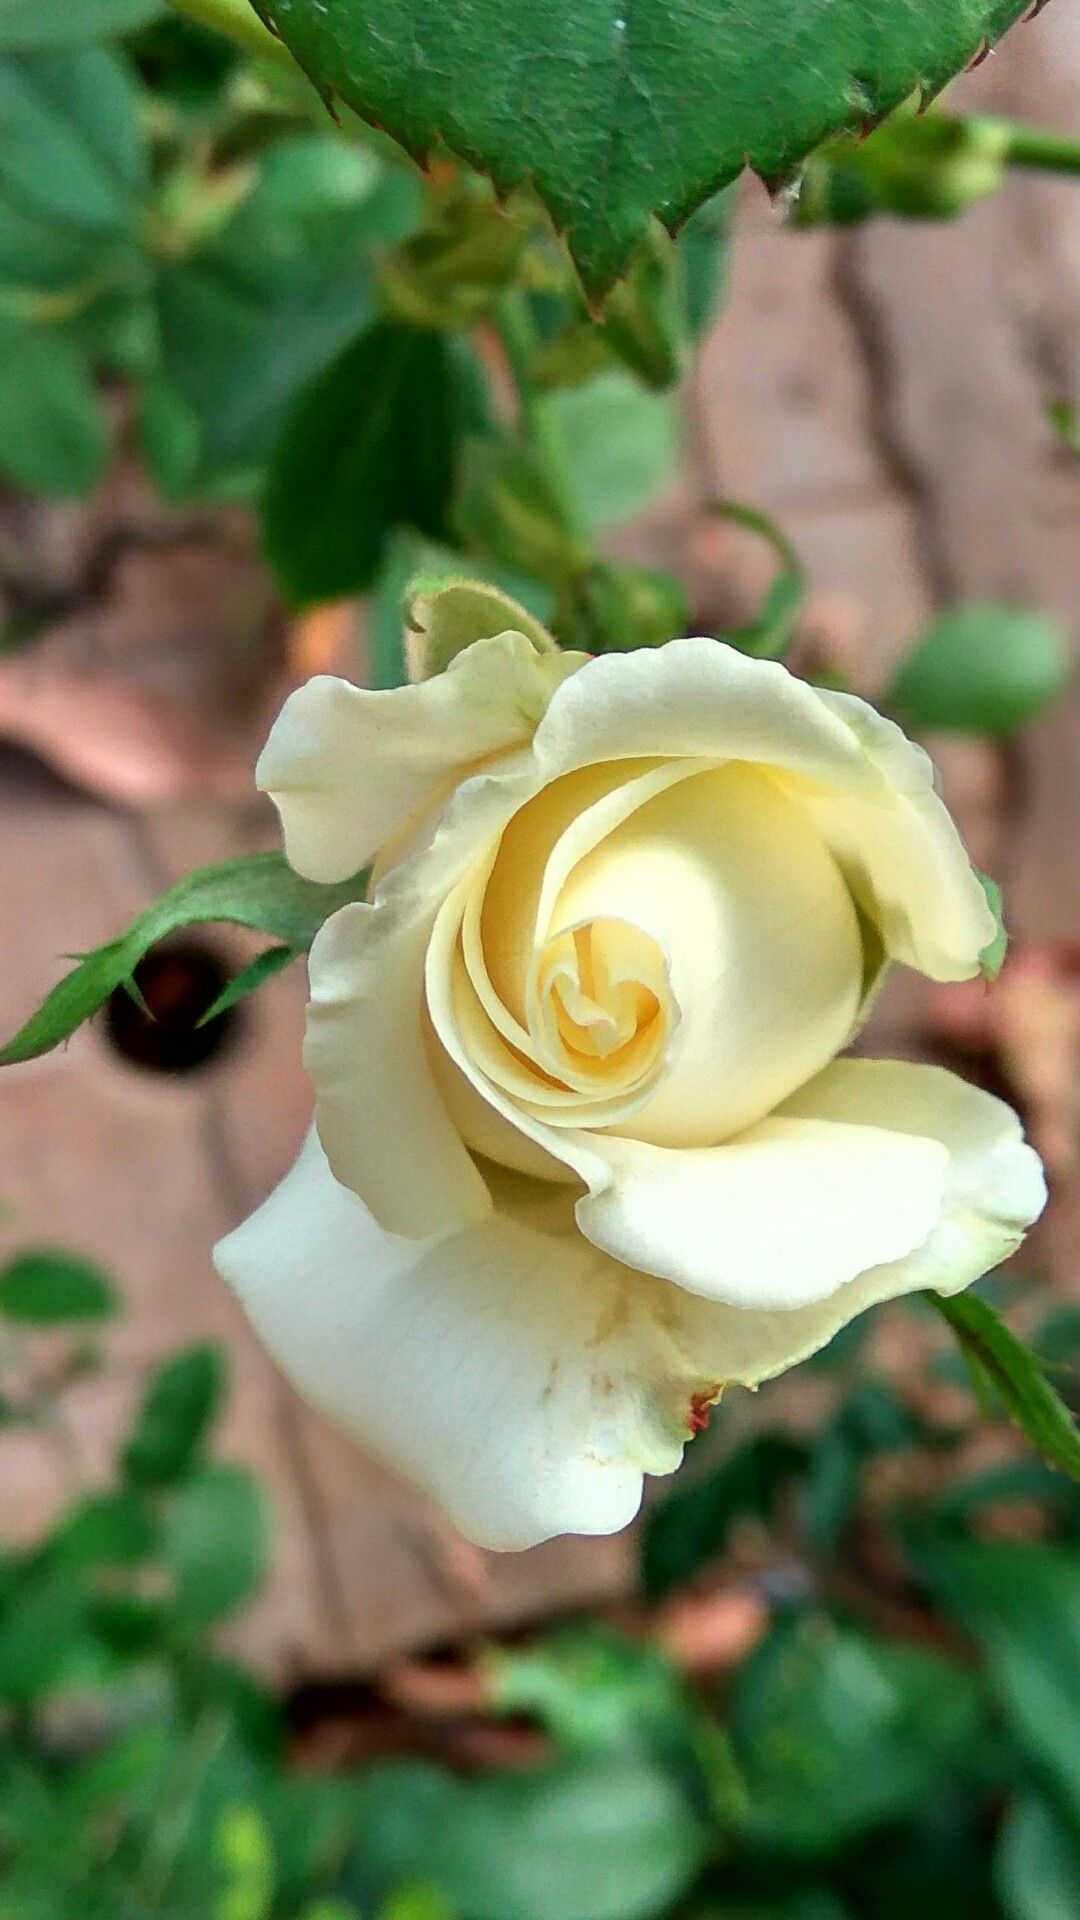 The White Rose Is Looking So Beautiful And Excellent The Meaning Of